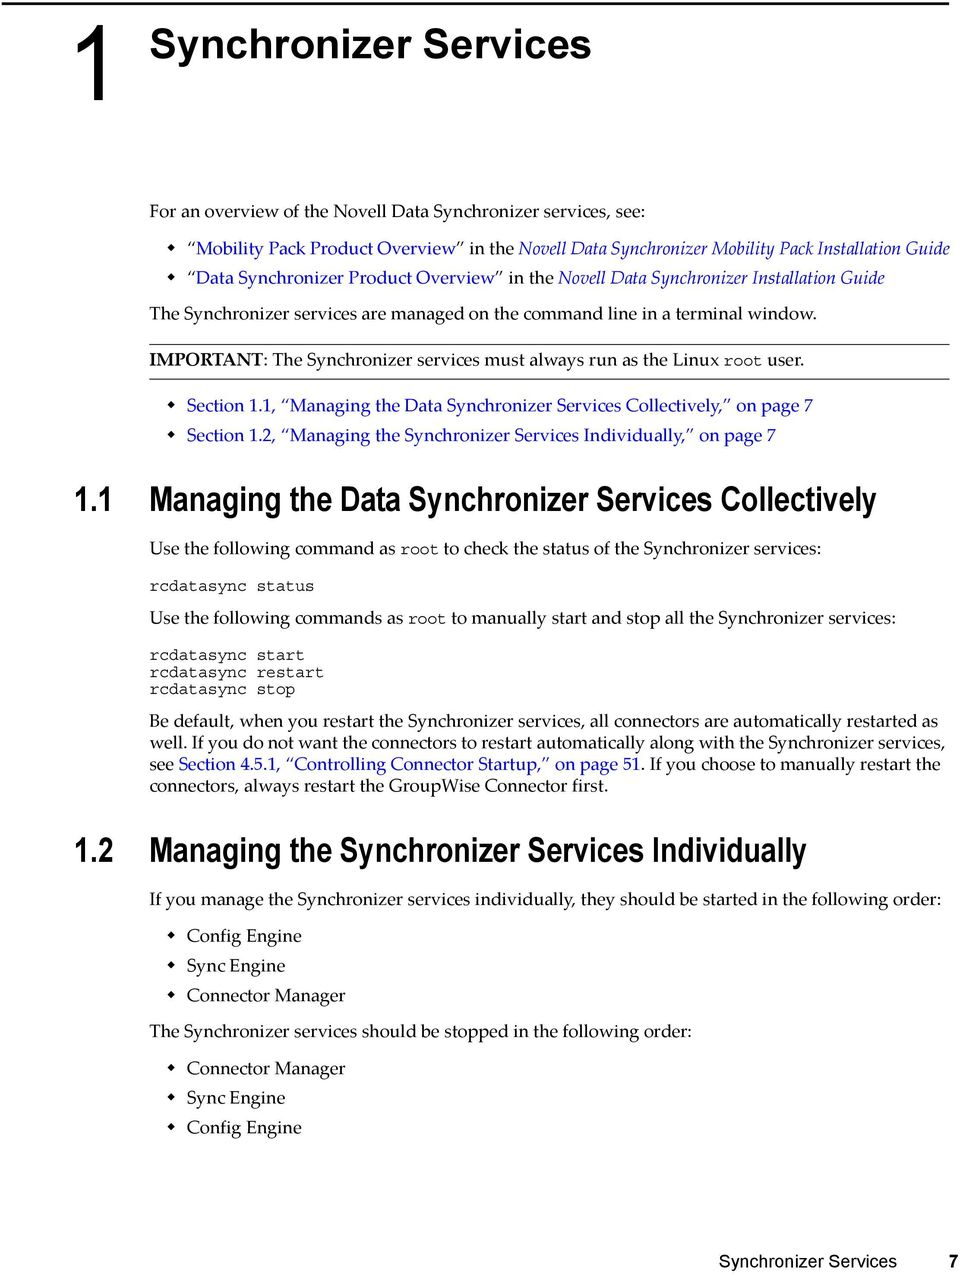 IMPORTANT: The Synchronizer services must always run as the Linux root user. Section 1.1, Managing the Data Synchronizer Services Collectively, on page 7 Section 1.